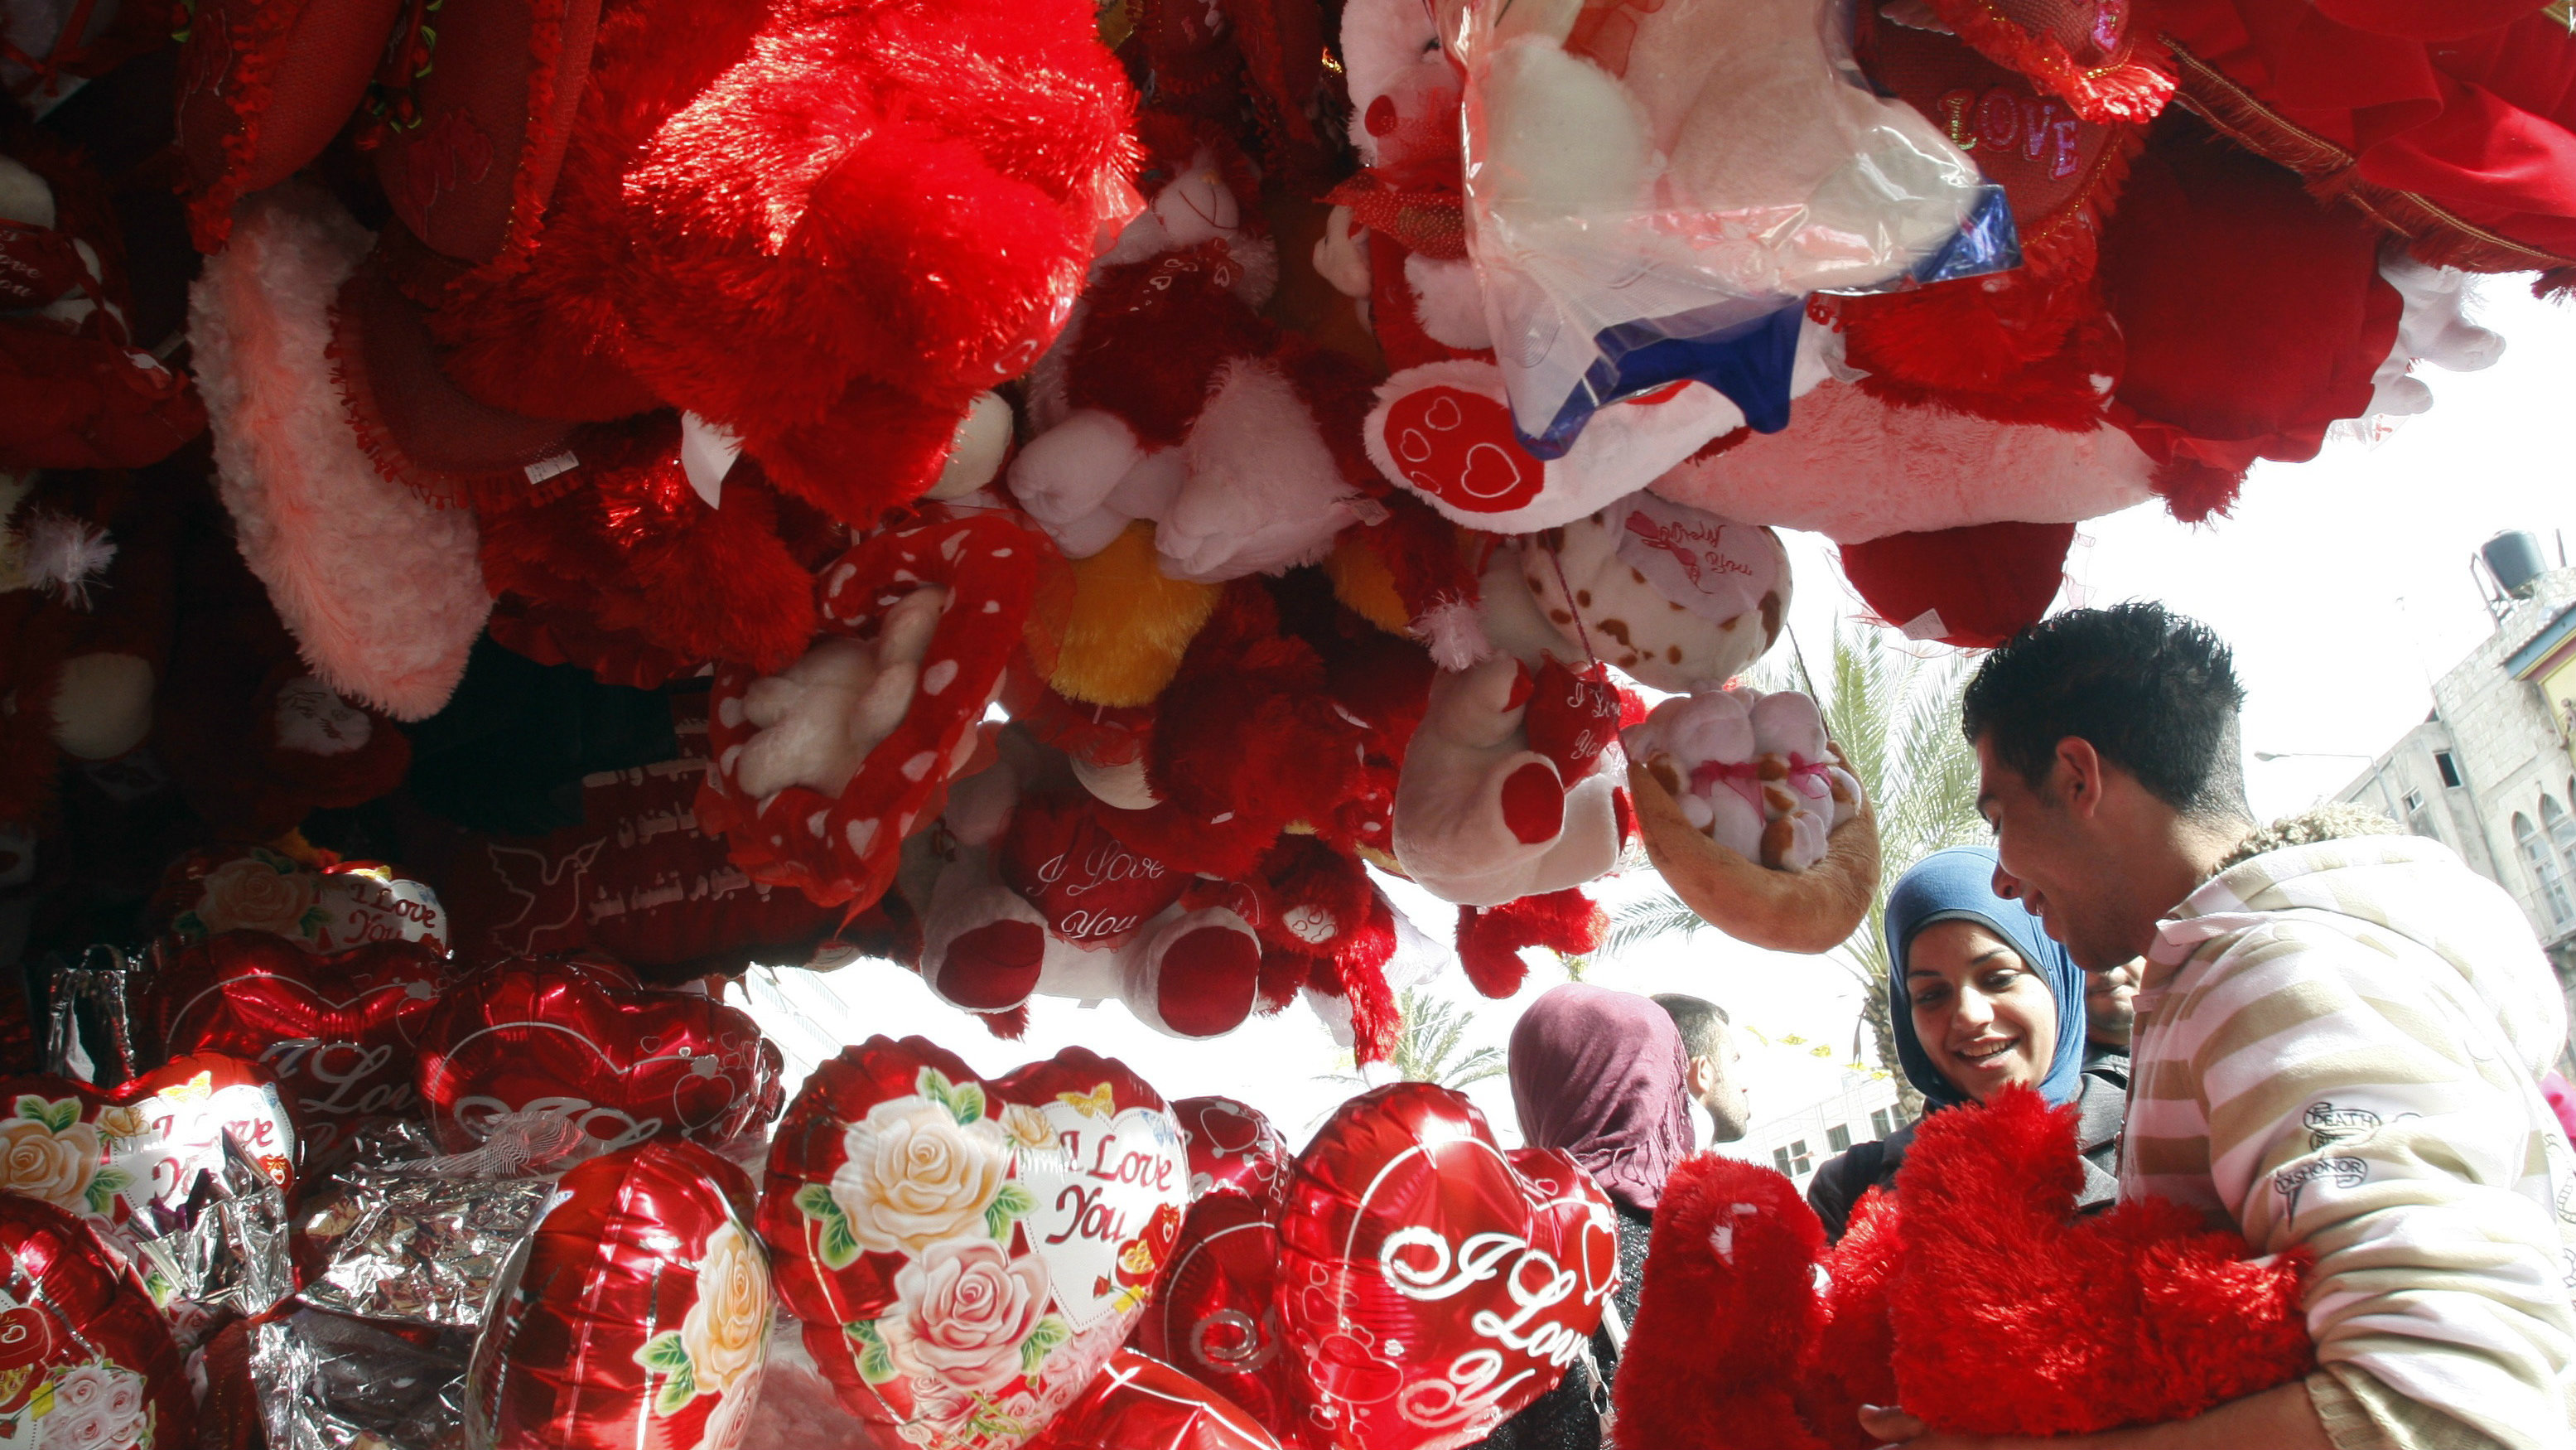 A Palestinian woman looks at Valentine's Day gifts at a shop in the West Bank city of Nablus February 14, 2010.